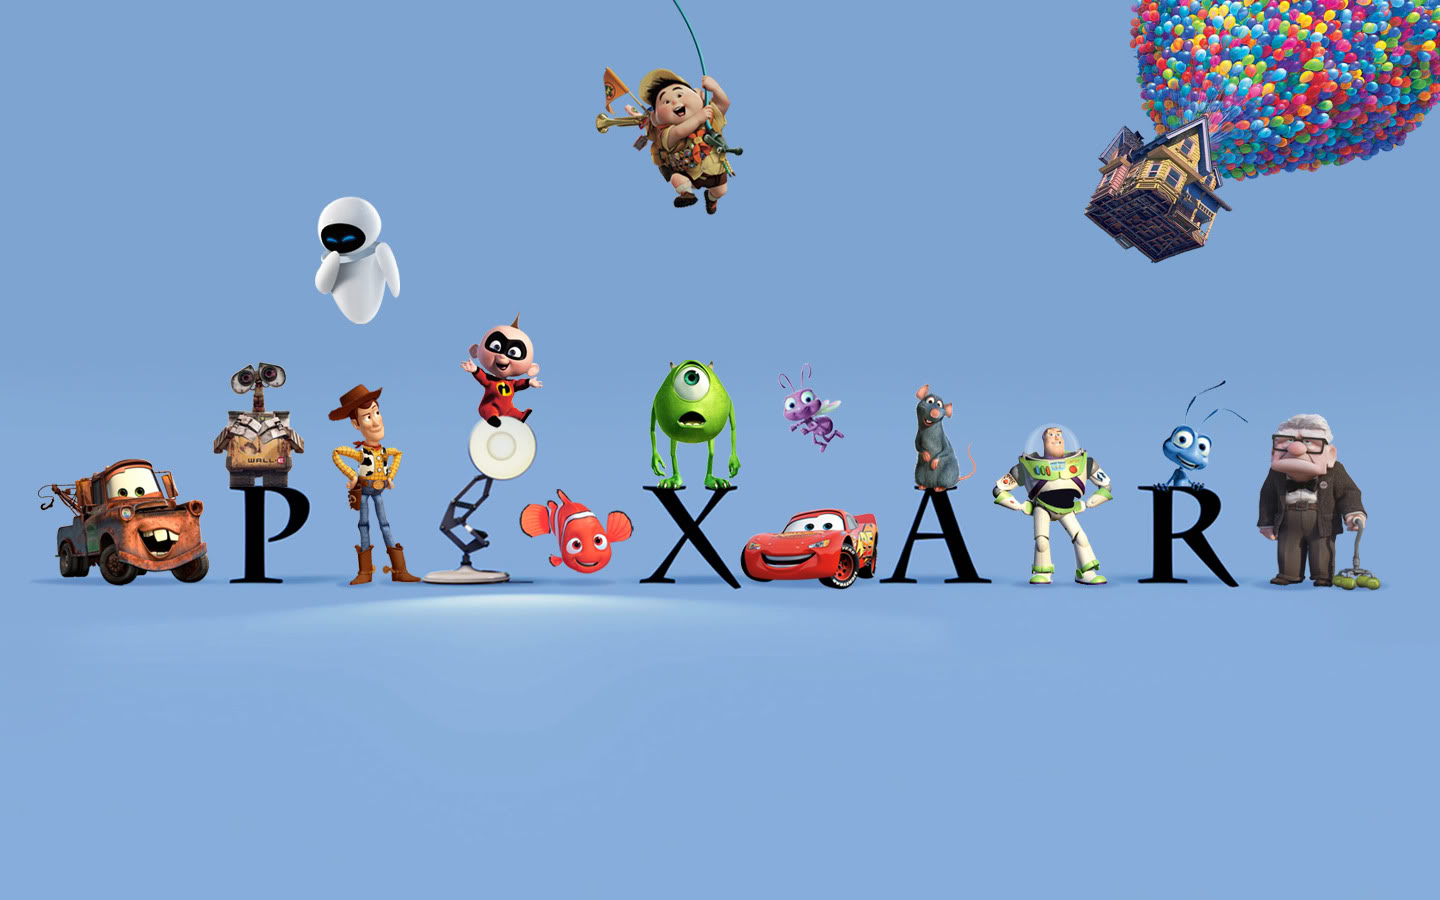 Pixar - From Best To Worst